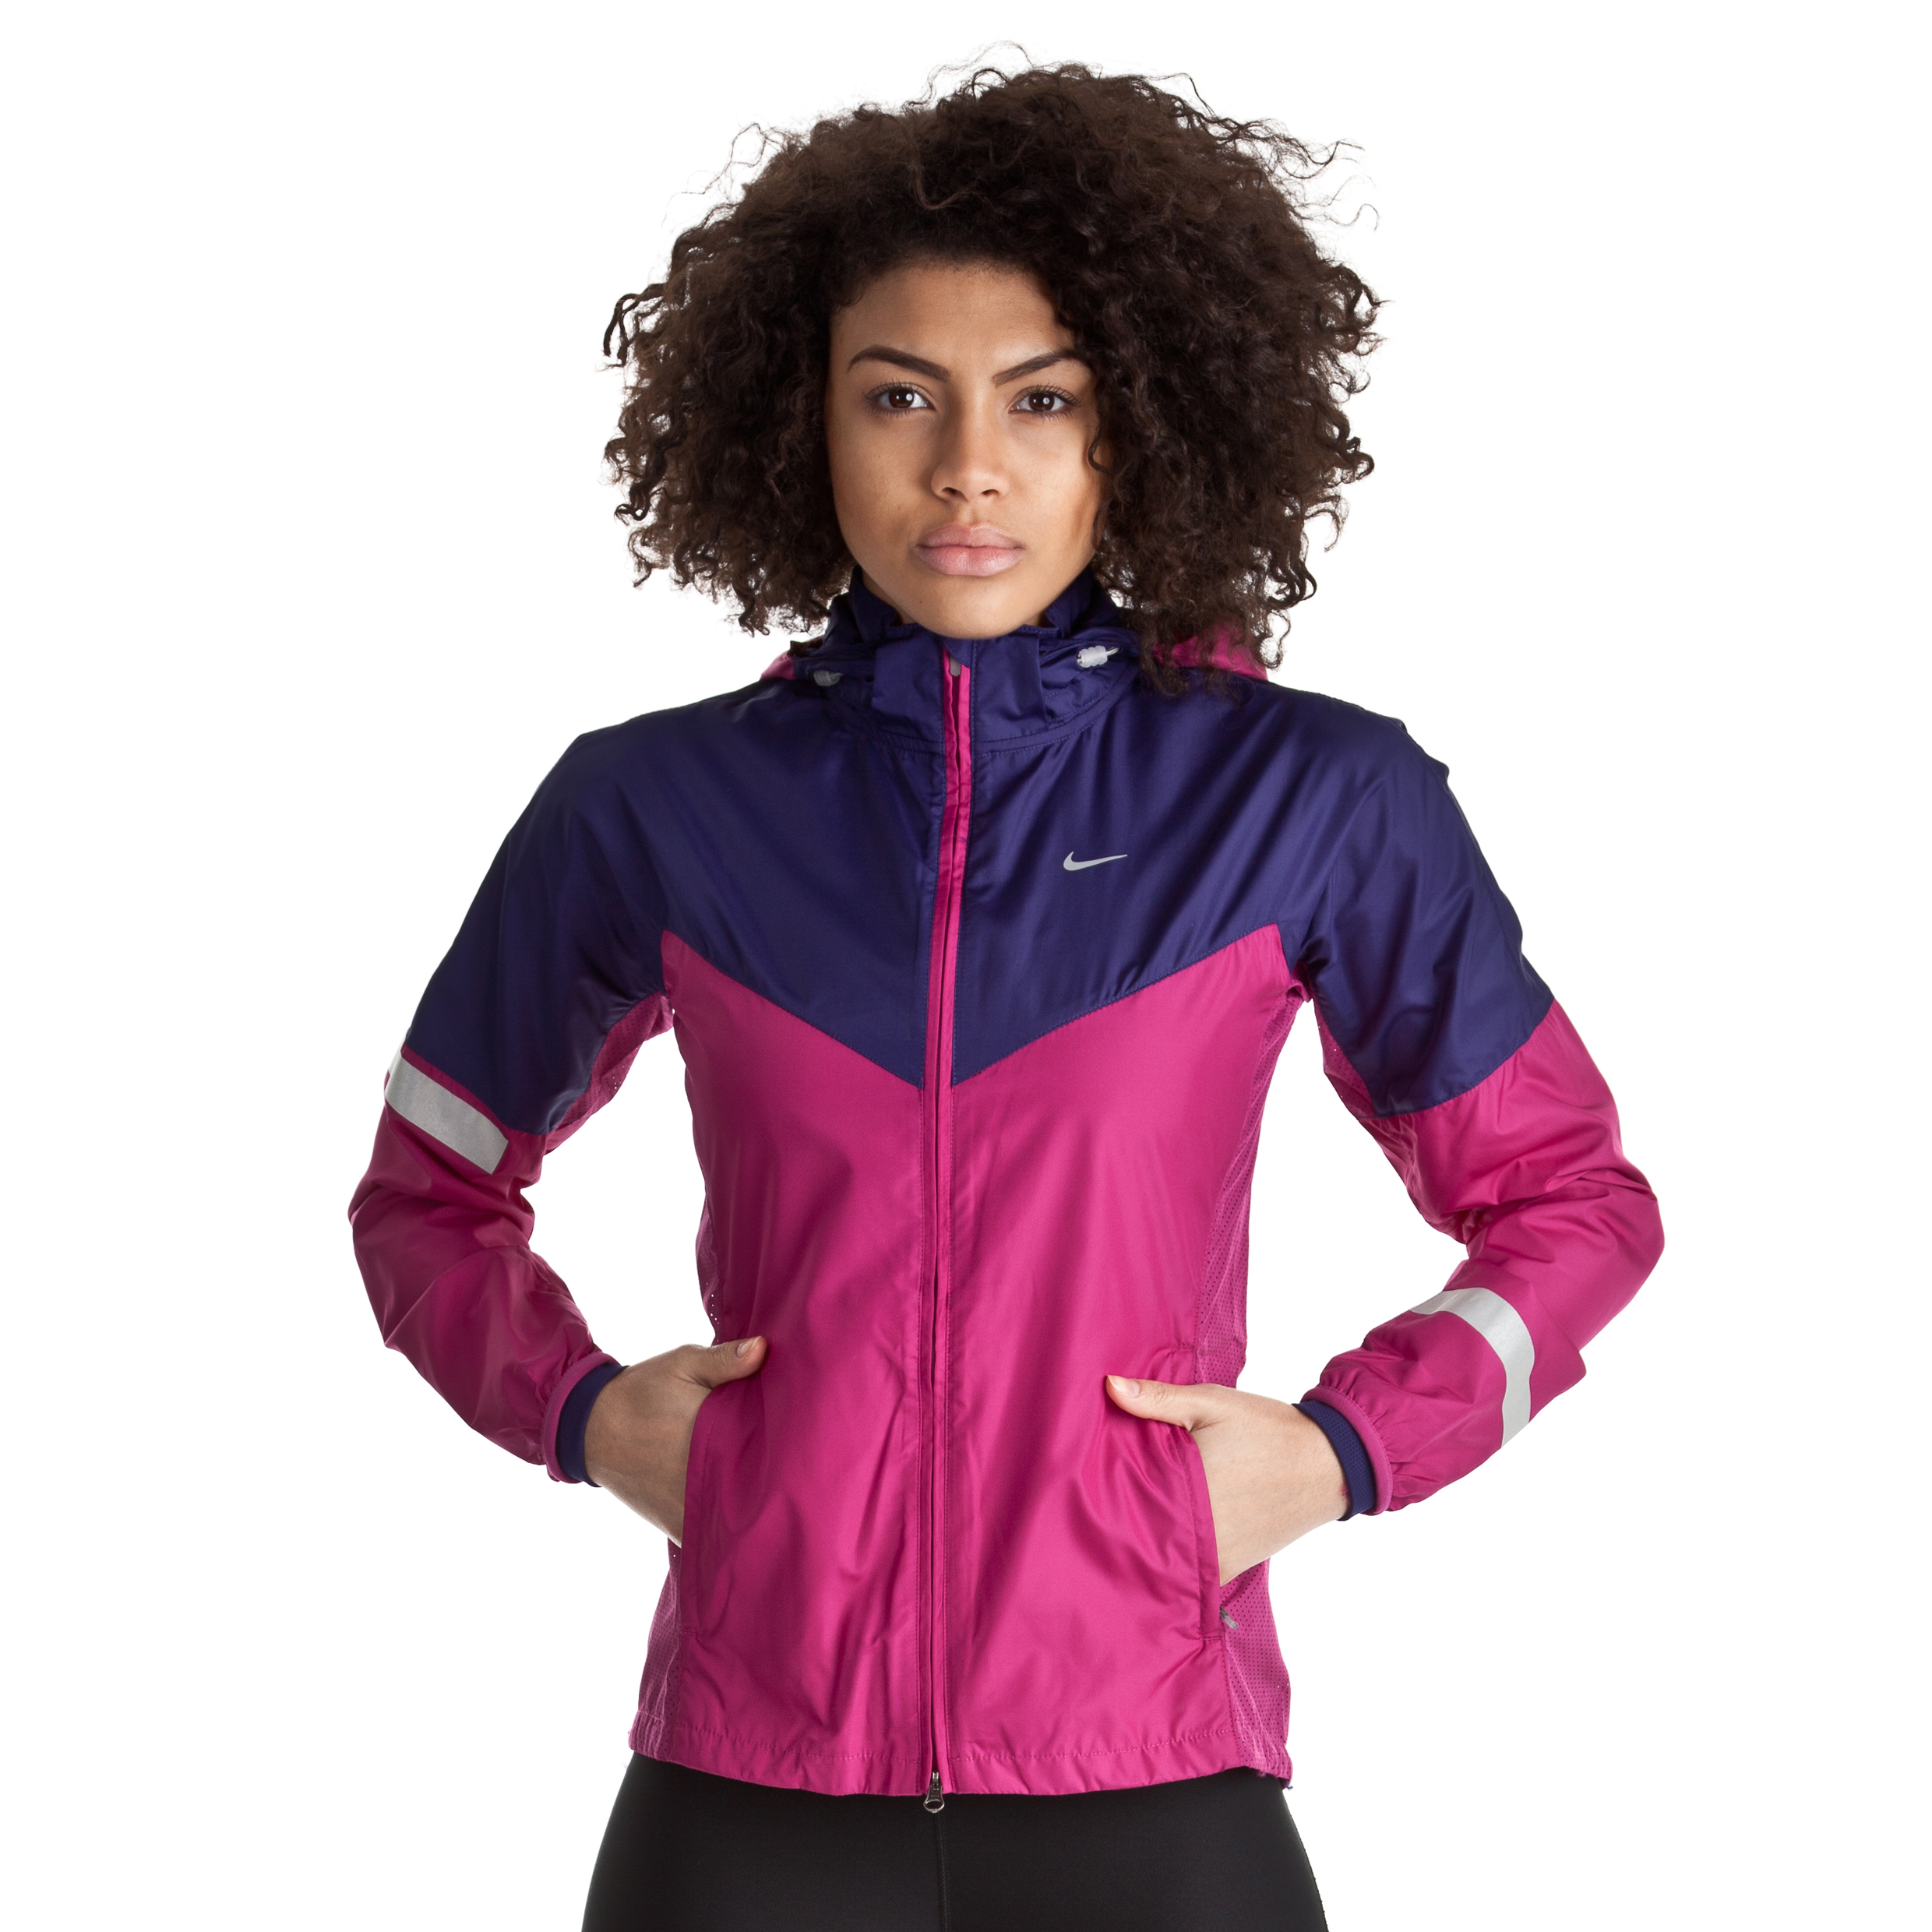 Nike Vapor Jacket - Rave Pink/Night Blue/Reflective Silver - Womens